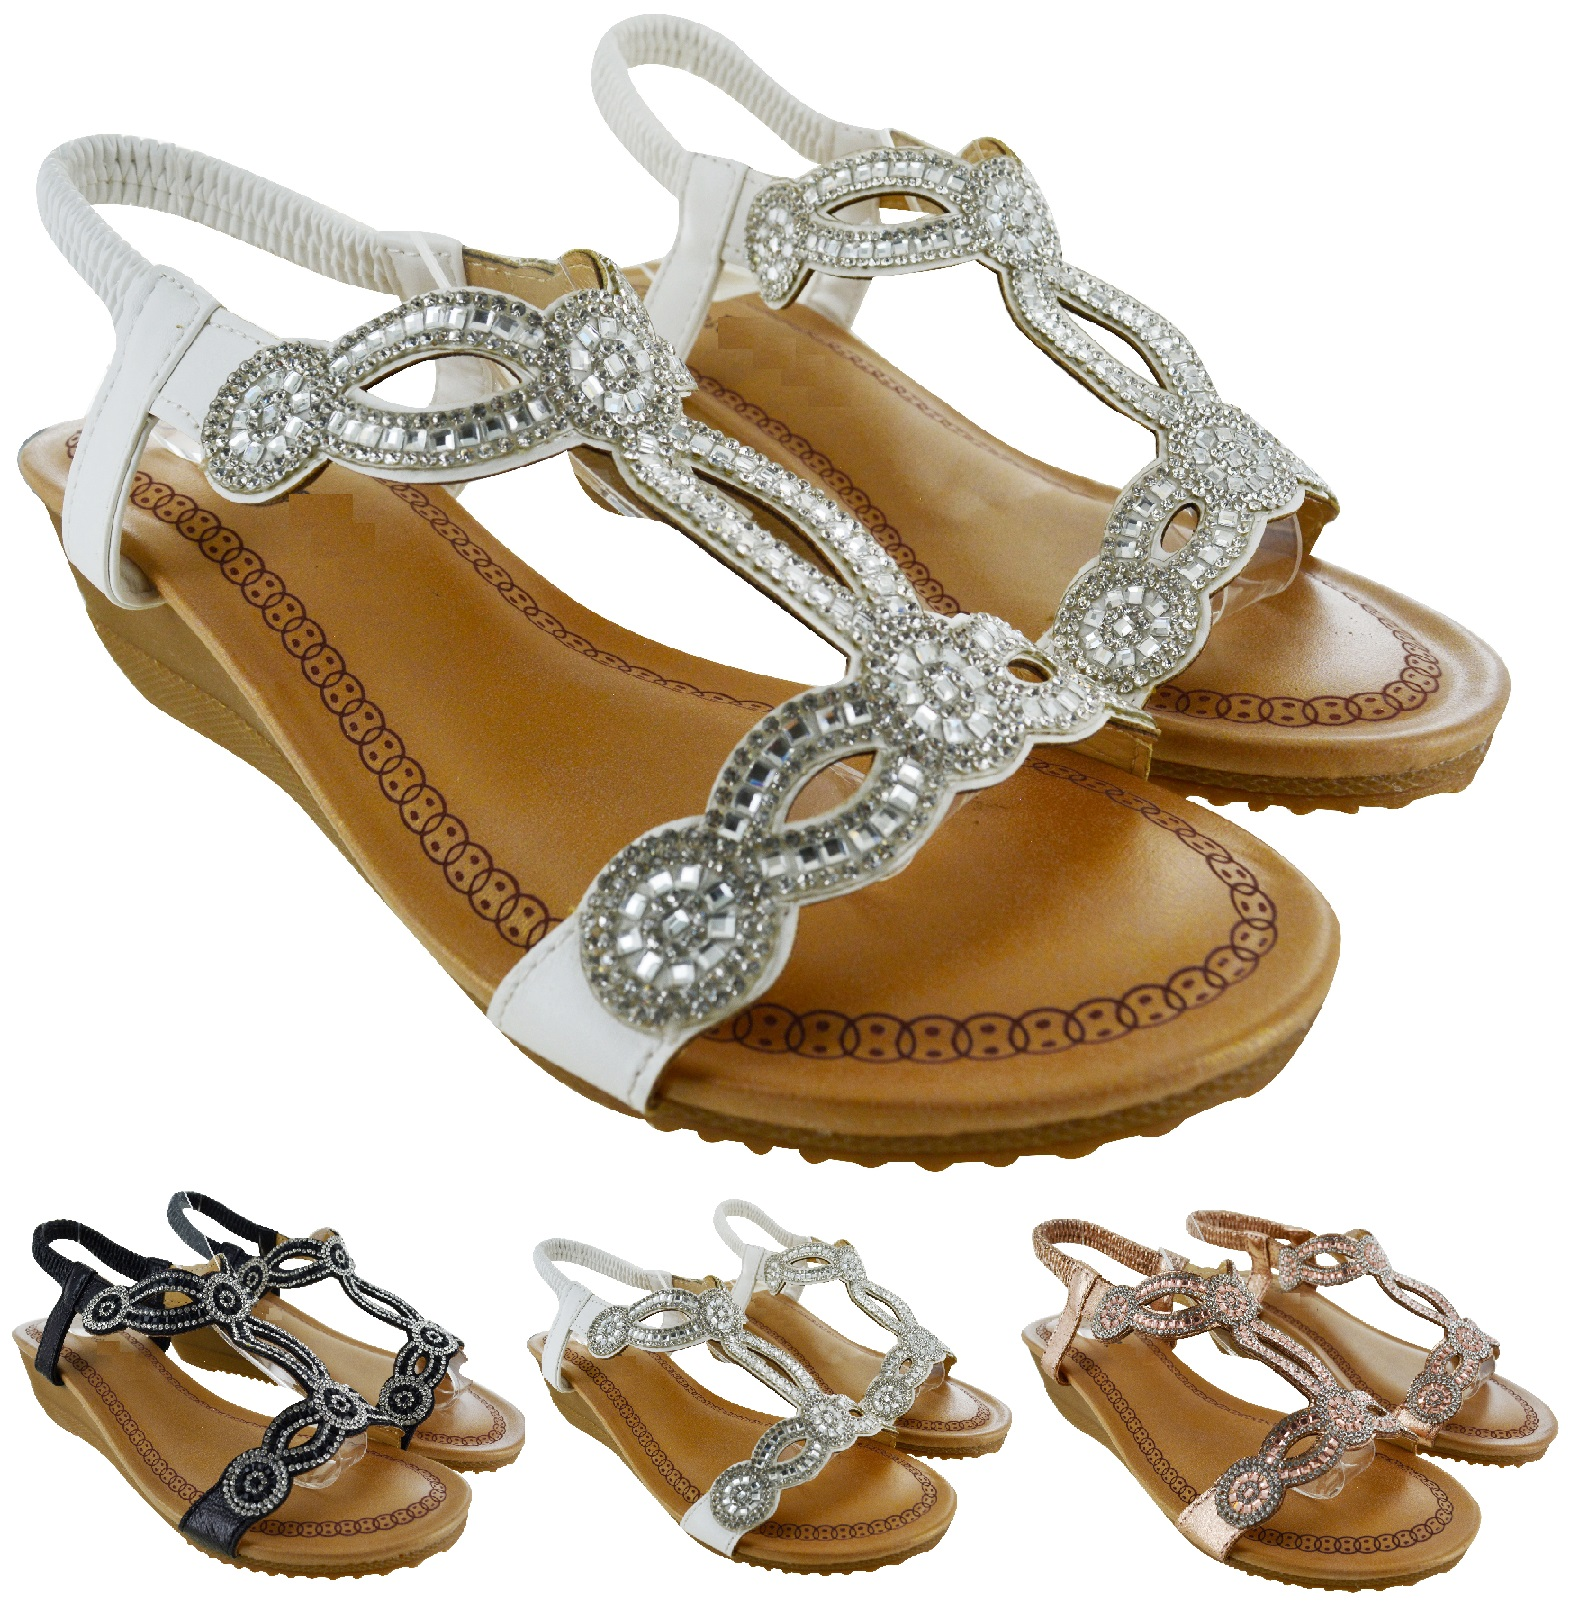 57ab7124a73 Details about NEW LADIES WOMENS LOW HEEL WEDGE SUMMER BEACH SLING BACK  SANDALS SHOES SIZE 3-8